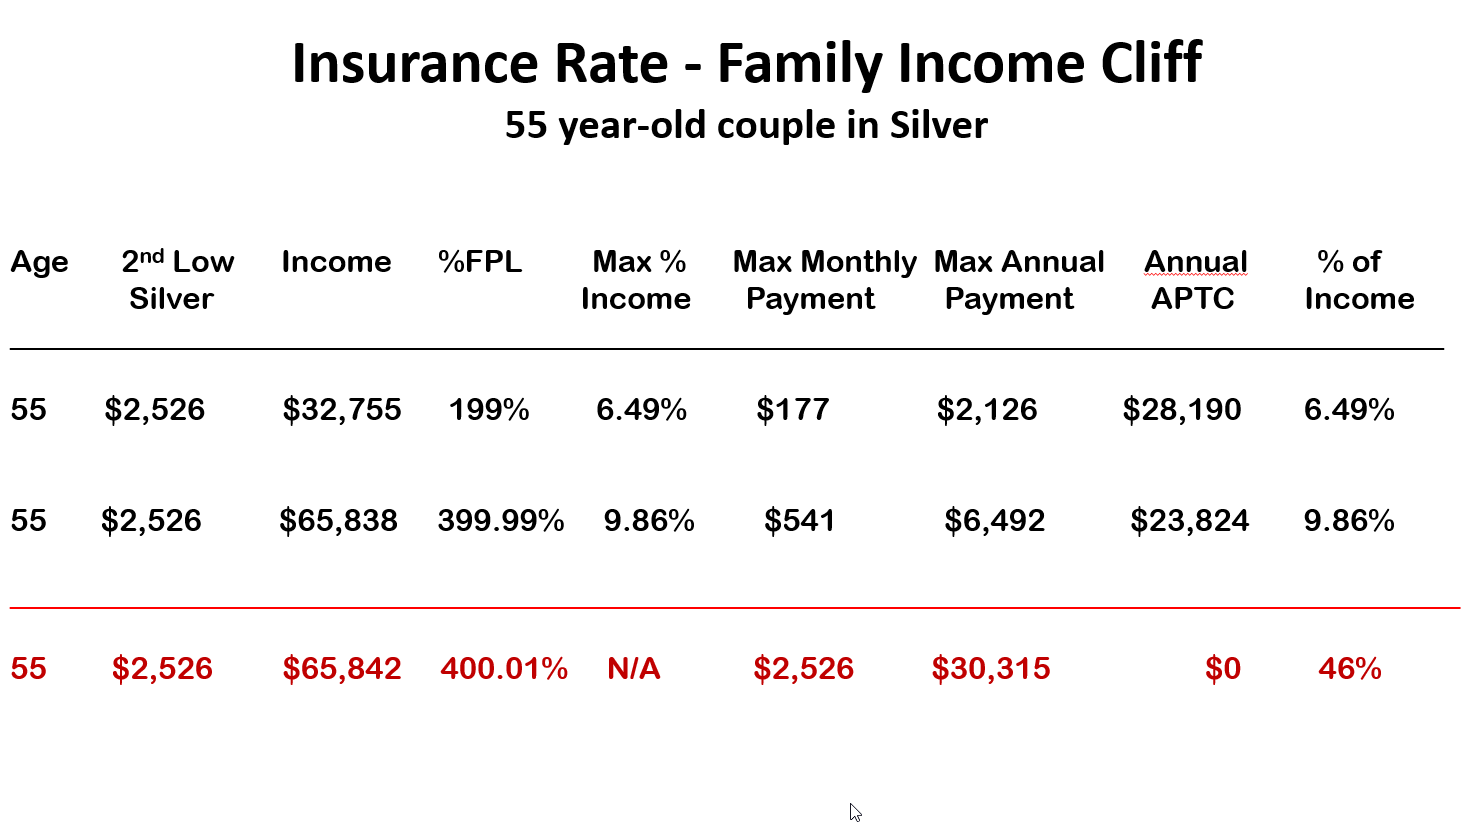 Insurance Rate - Family Income Cliff 55 year old couple